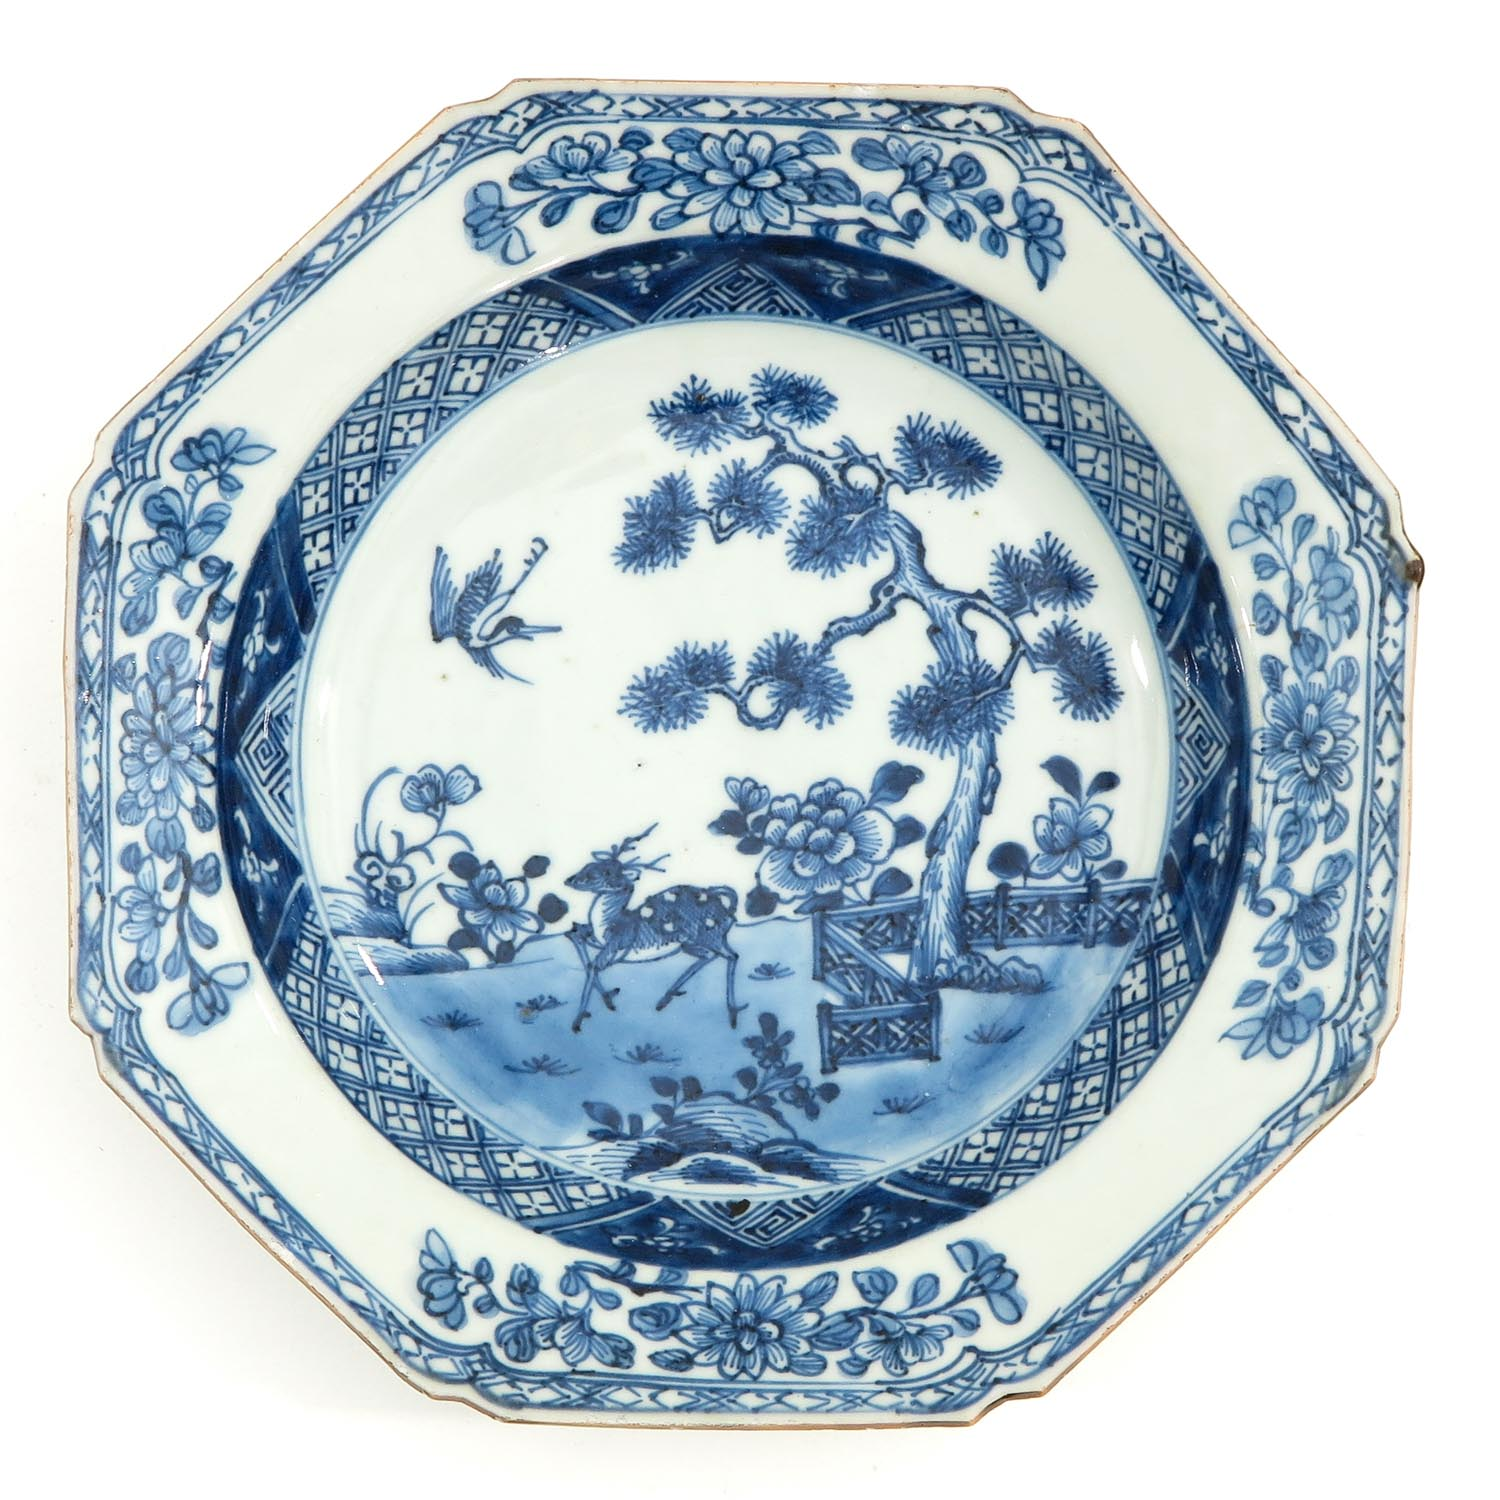 A Series of 3 Blue and White Plates - Image 5 of 10